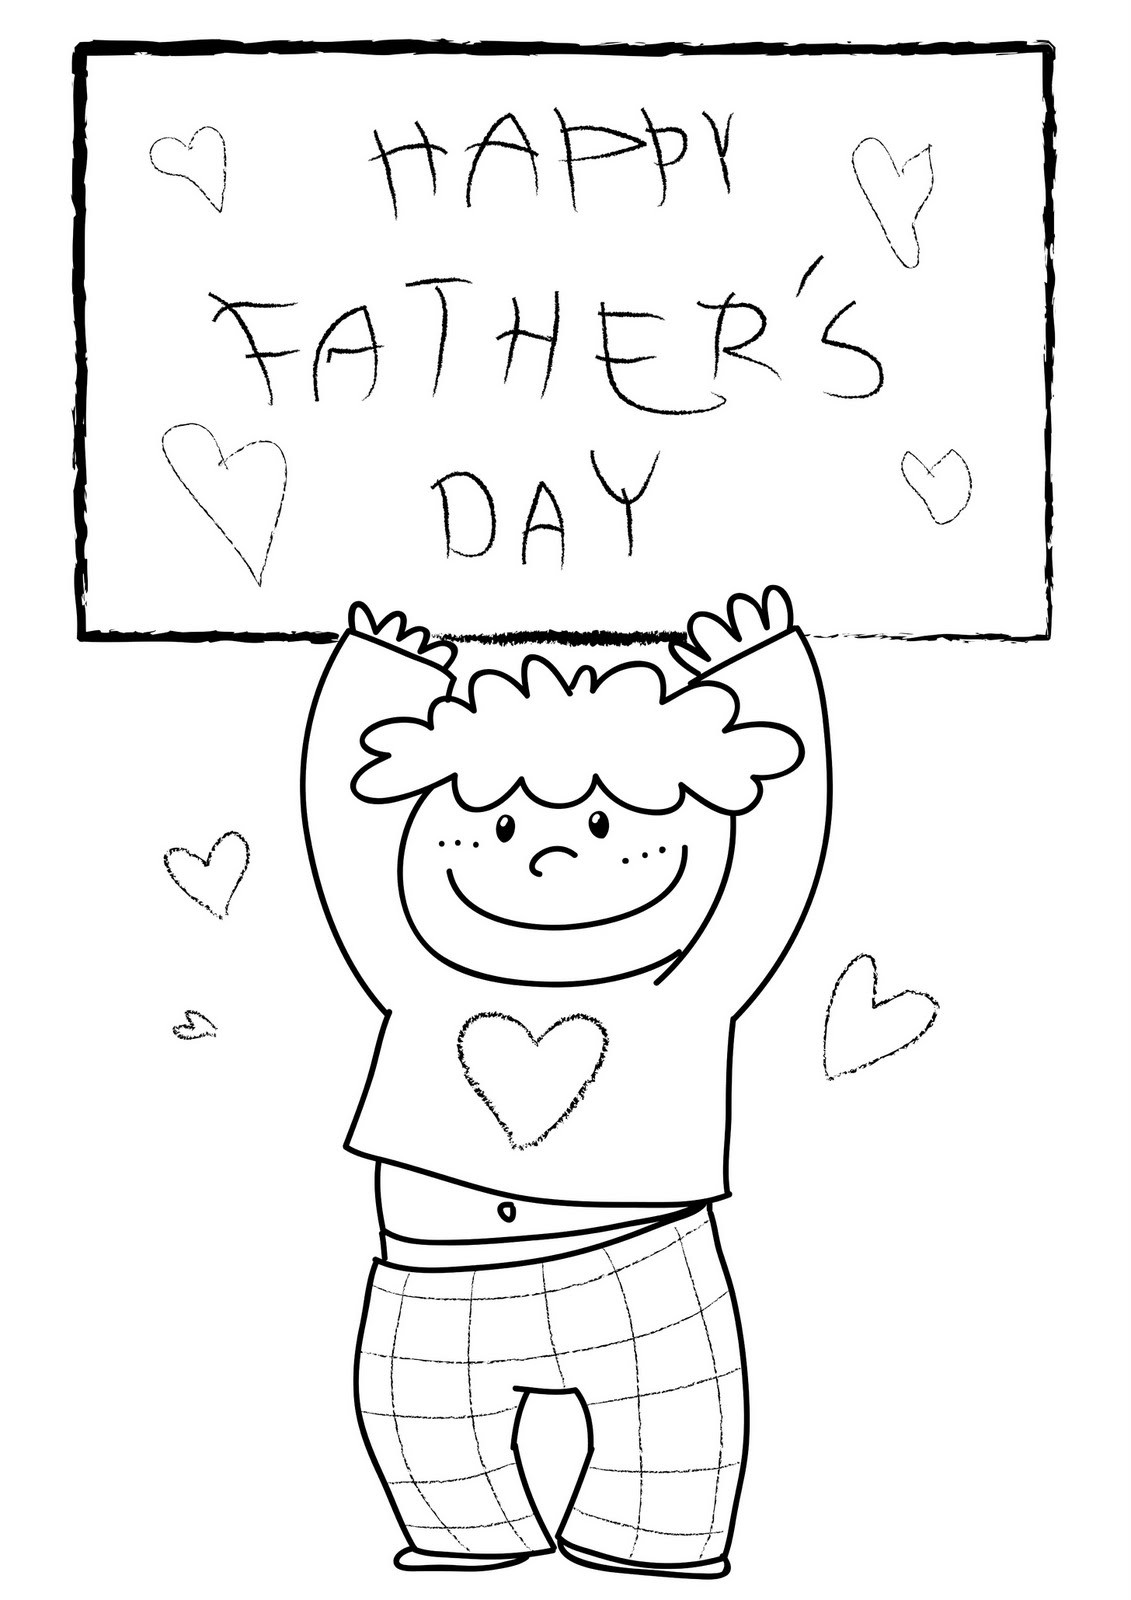 Best ideas about Fathers Day Coloring Pages For Kids . Save or Pin Father´s Day Coloring Child Coloring Now.